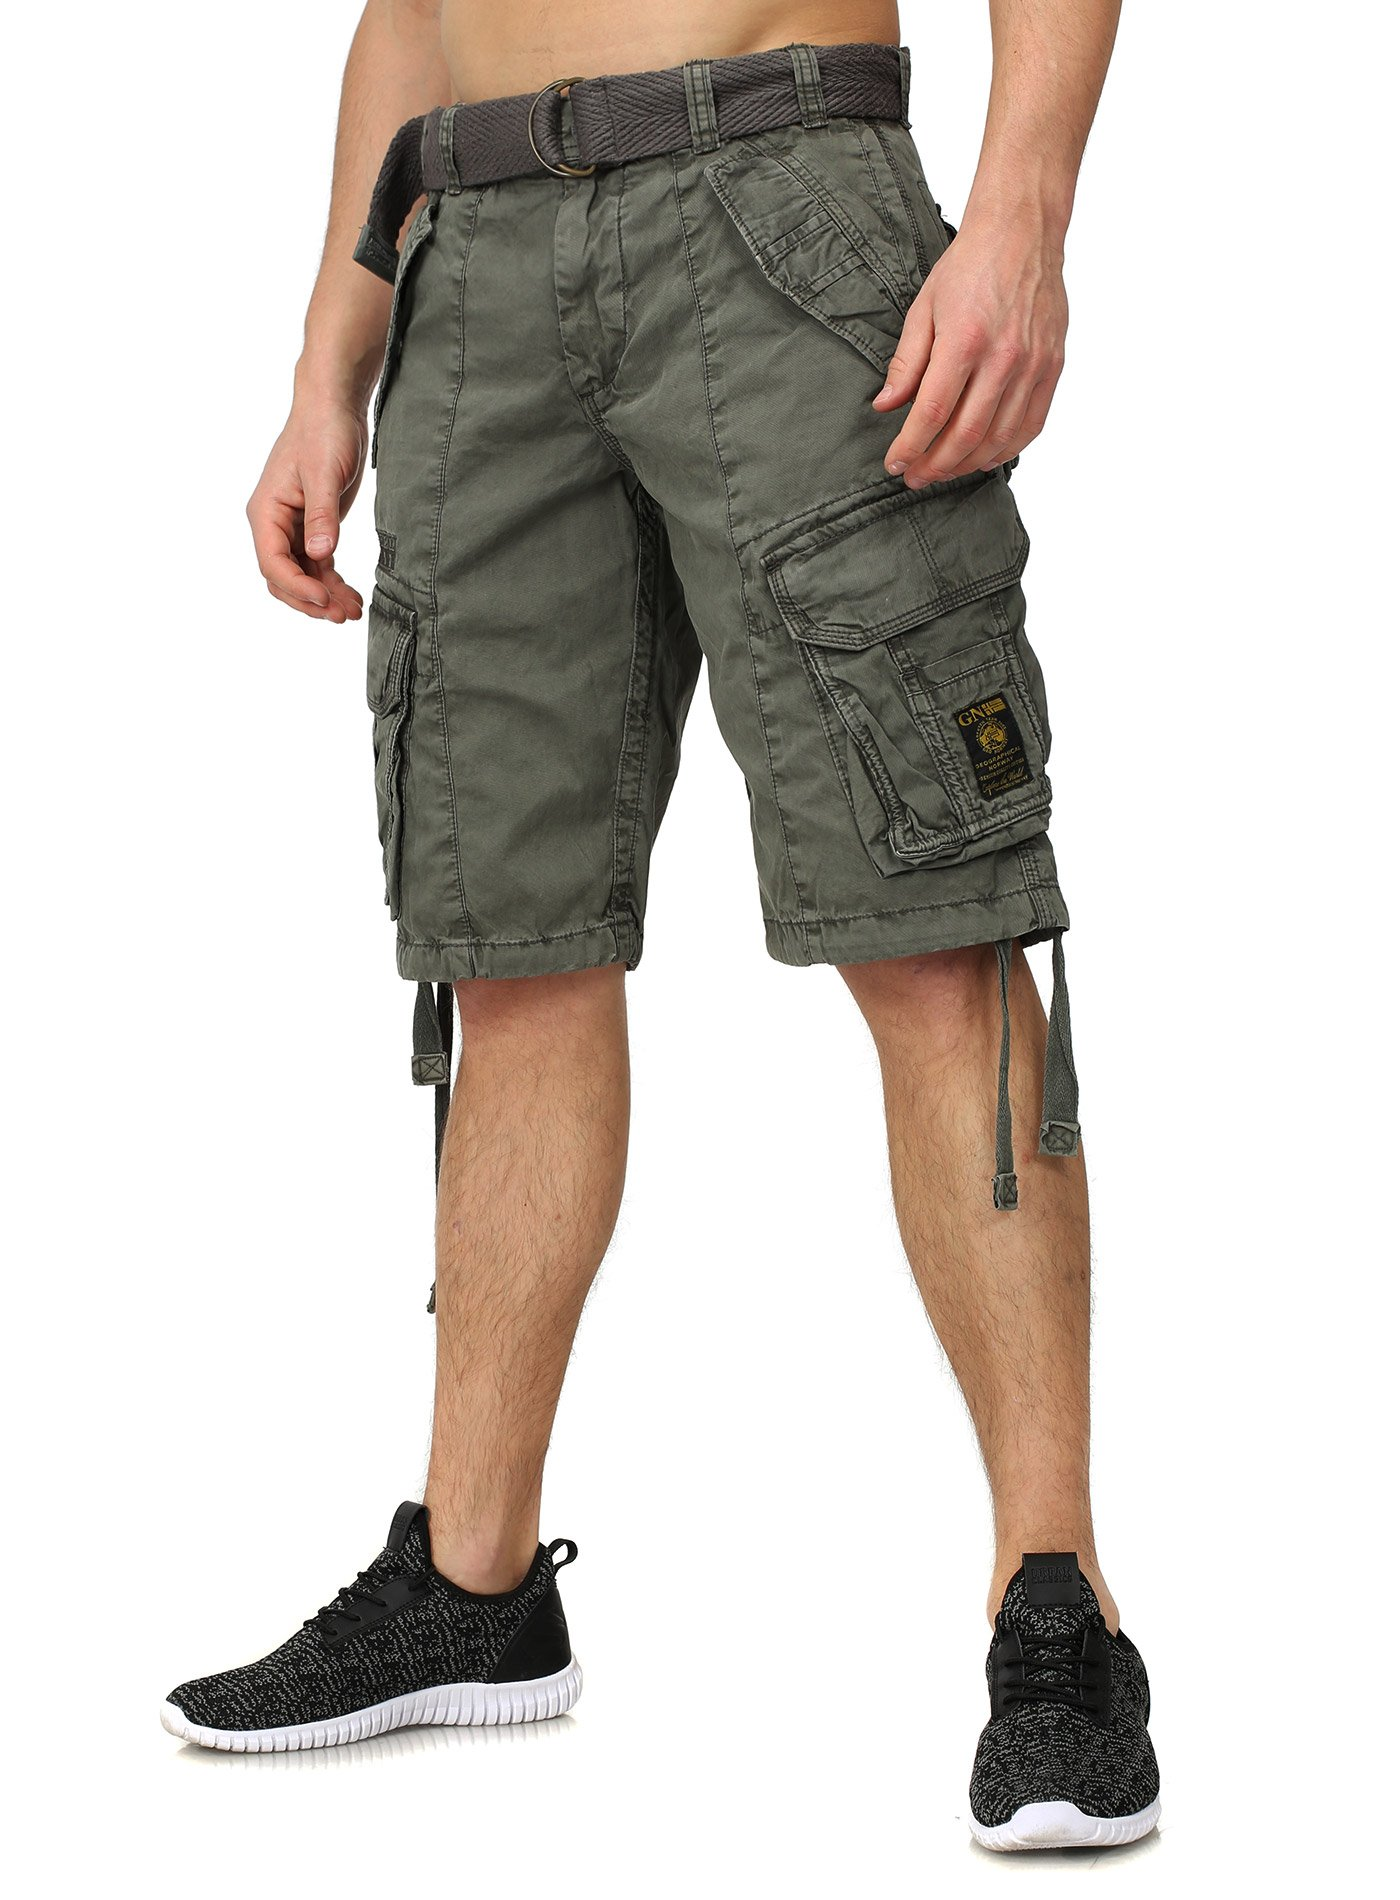 bd3becfb63a8 Trooper Cargo Shorts Lightning Edition Bundle with UD Windproof Lighter.  Geographical Norway Sweatshorts PANTERE Cargo Style mit vielen Details  Bestickungen ...